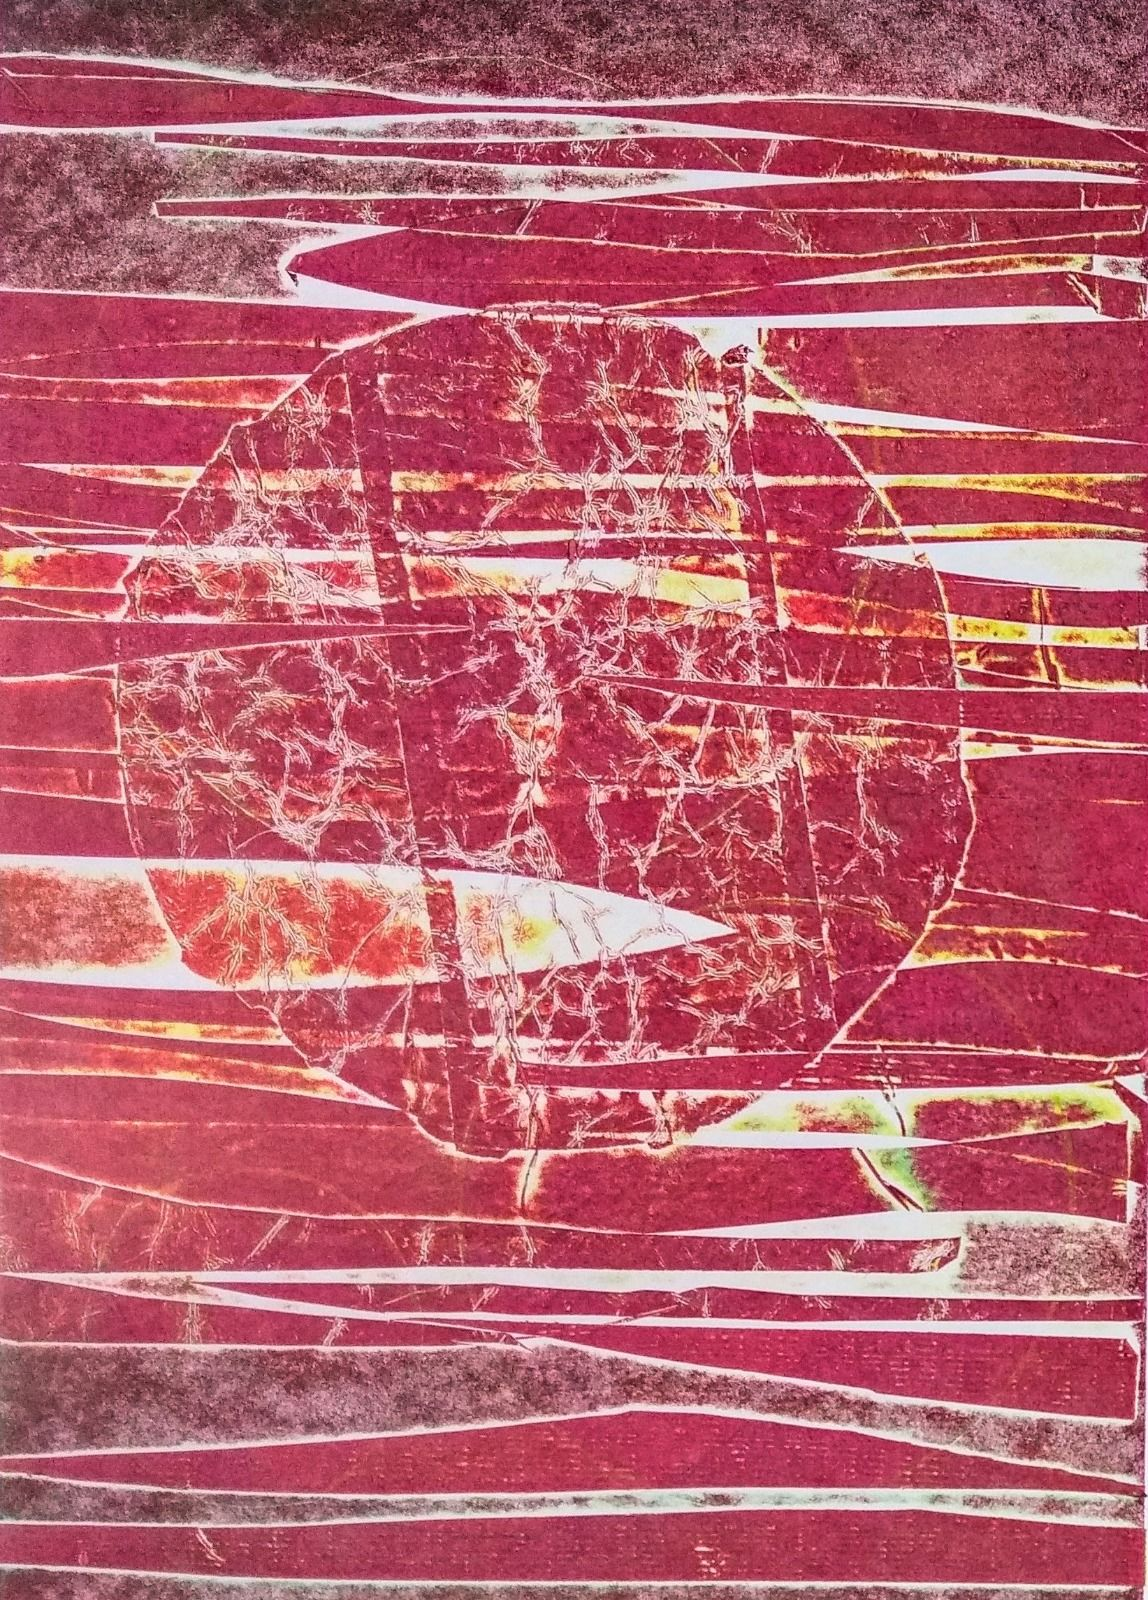 Collagraphy, planets, solar system, space, red, raspberry, orange